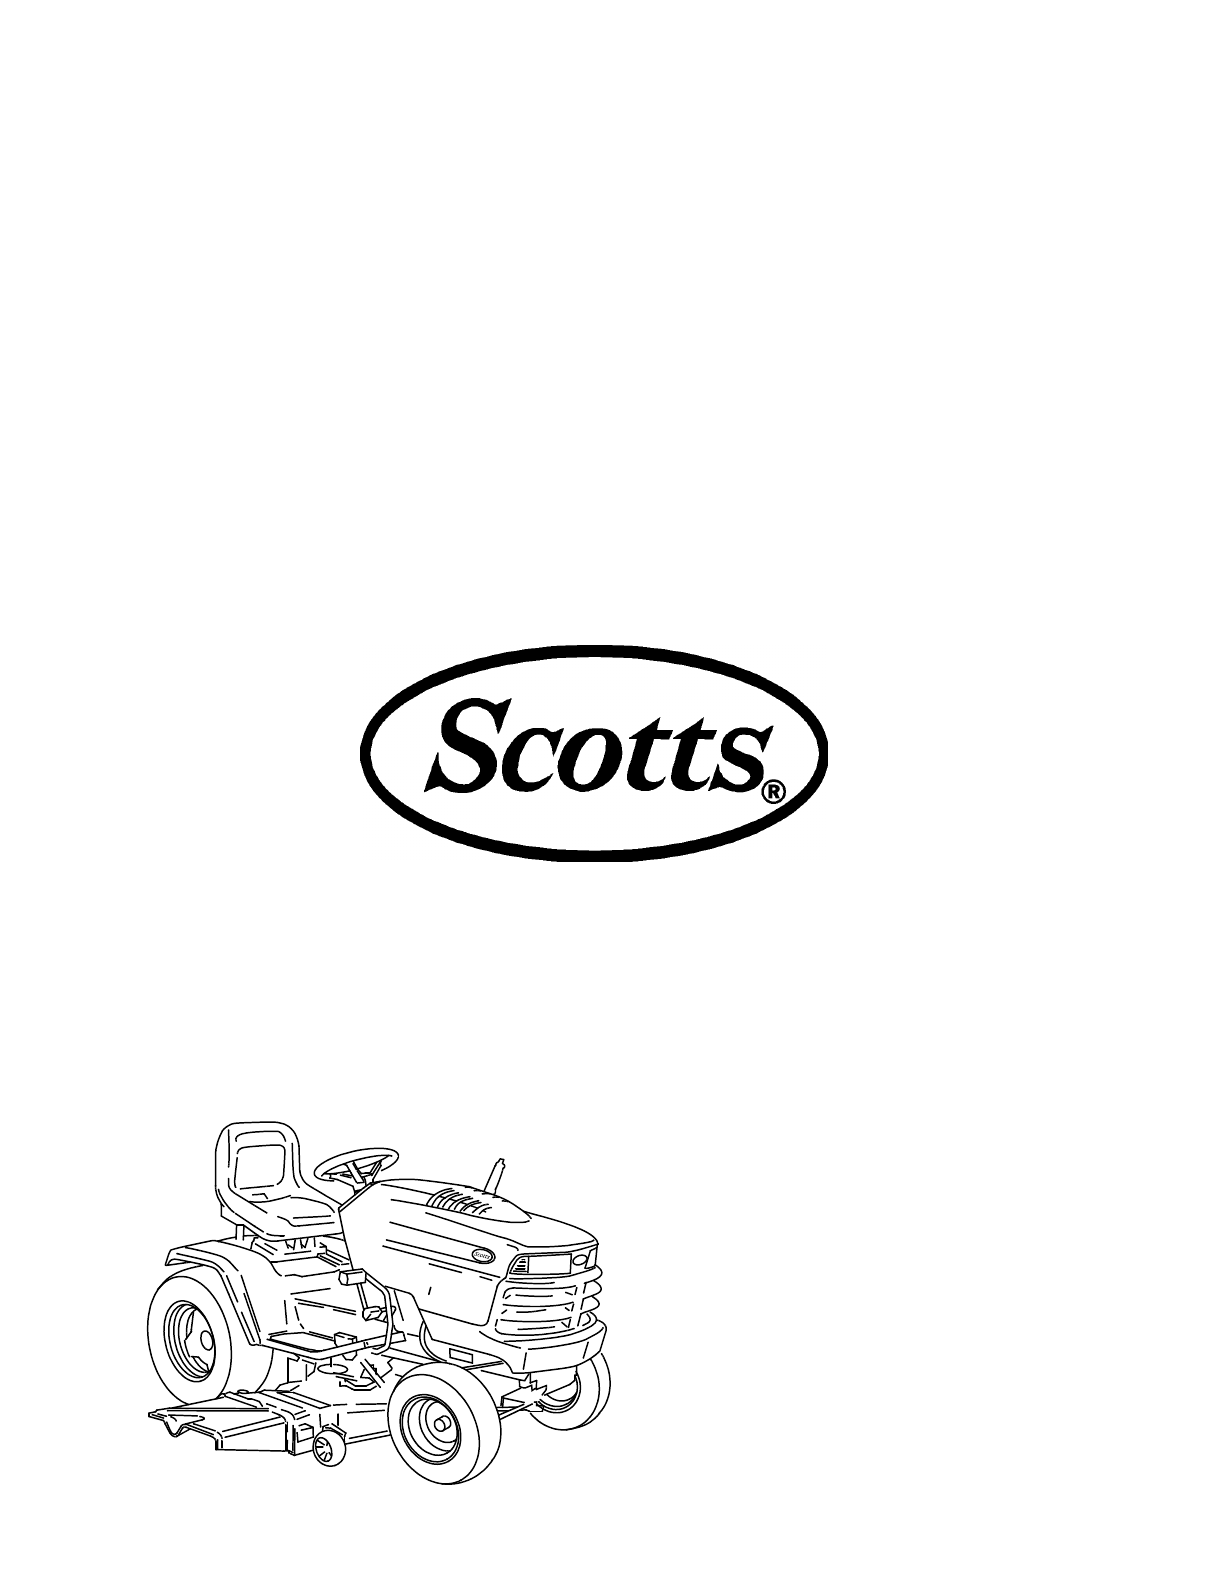 74d6465d 604f df44 71f6 2ff6ec9f391a bg1 scotts lawn mower s2048, s2554 user guide manualsonline com scotts s1642 wiring diagram at edmiracle.co